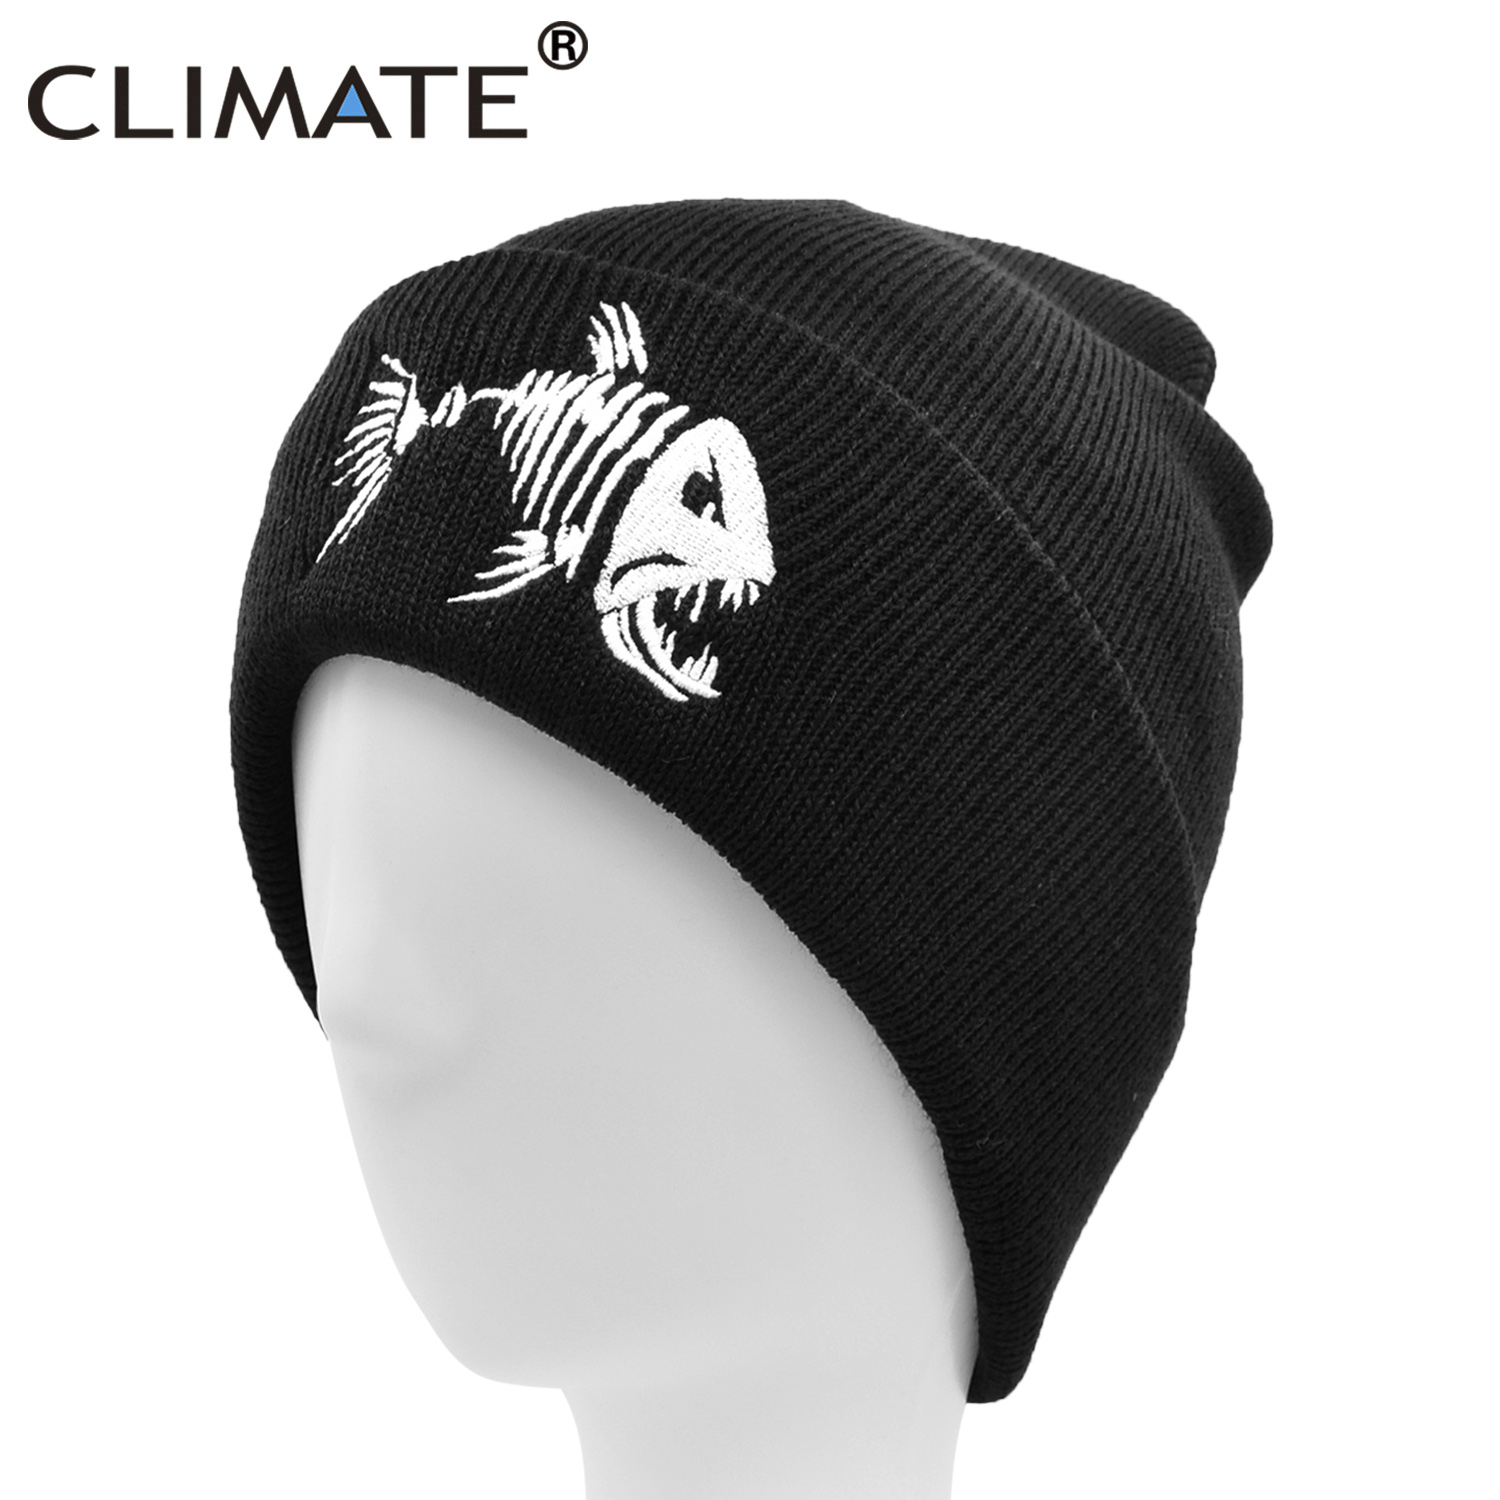 CLIMATE Men Fishbone Beanie Hat Winter Warm Fish Hunter Beanies Fishing Black Knit Skullies Fish Bone Cool Hip Hop Hat Man Hat